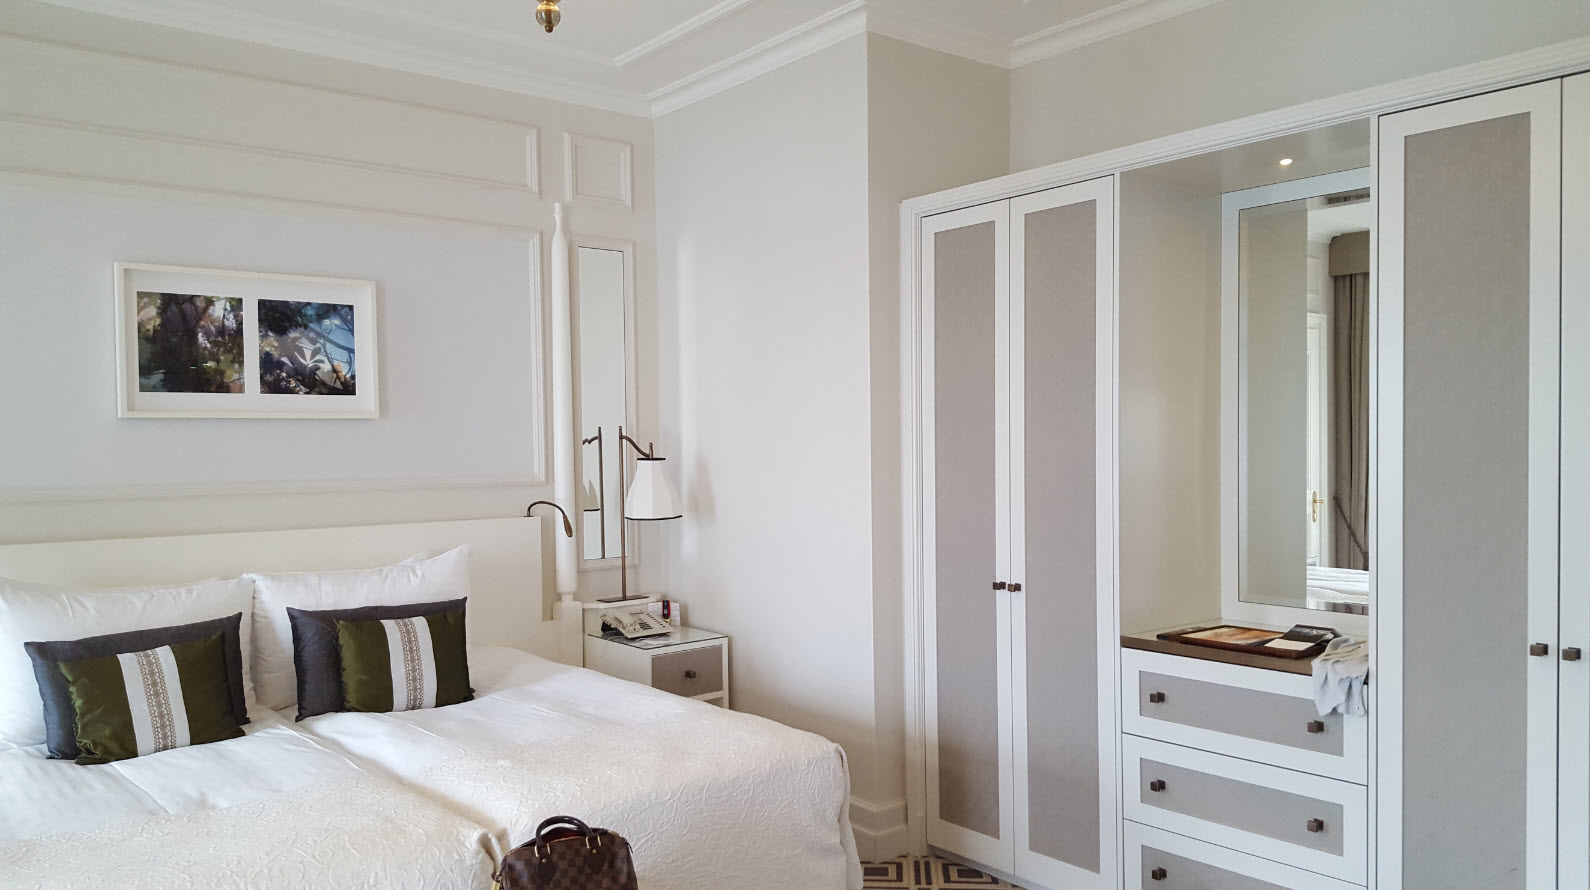 Grande chambre a la decoration moderne